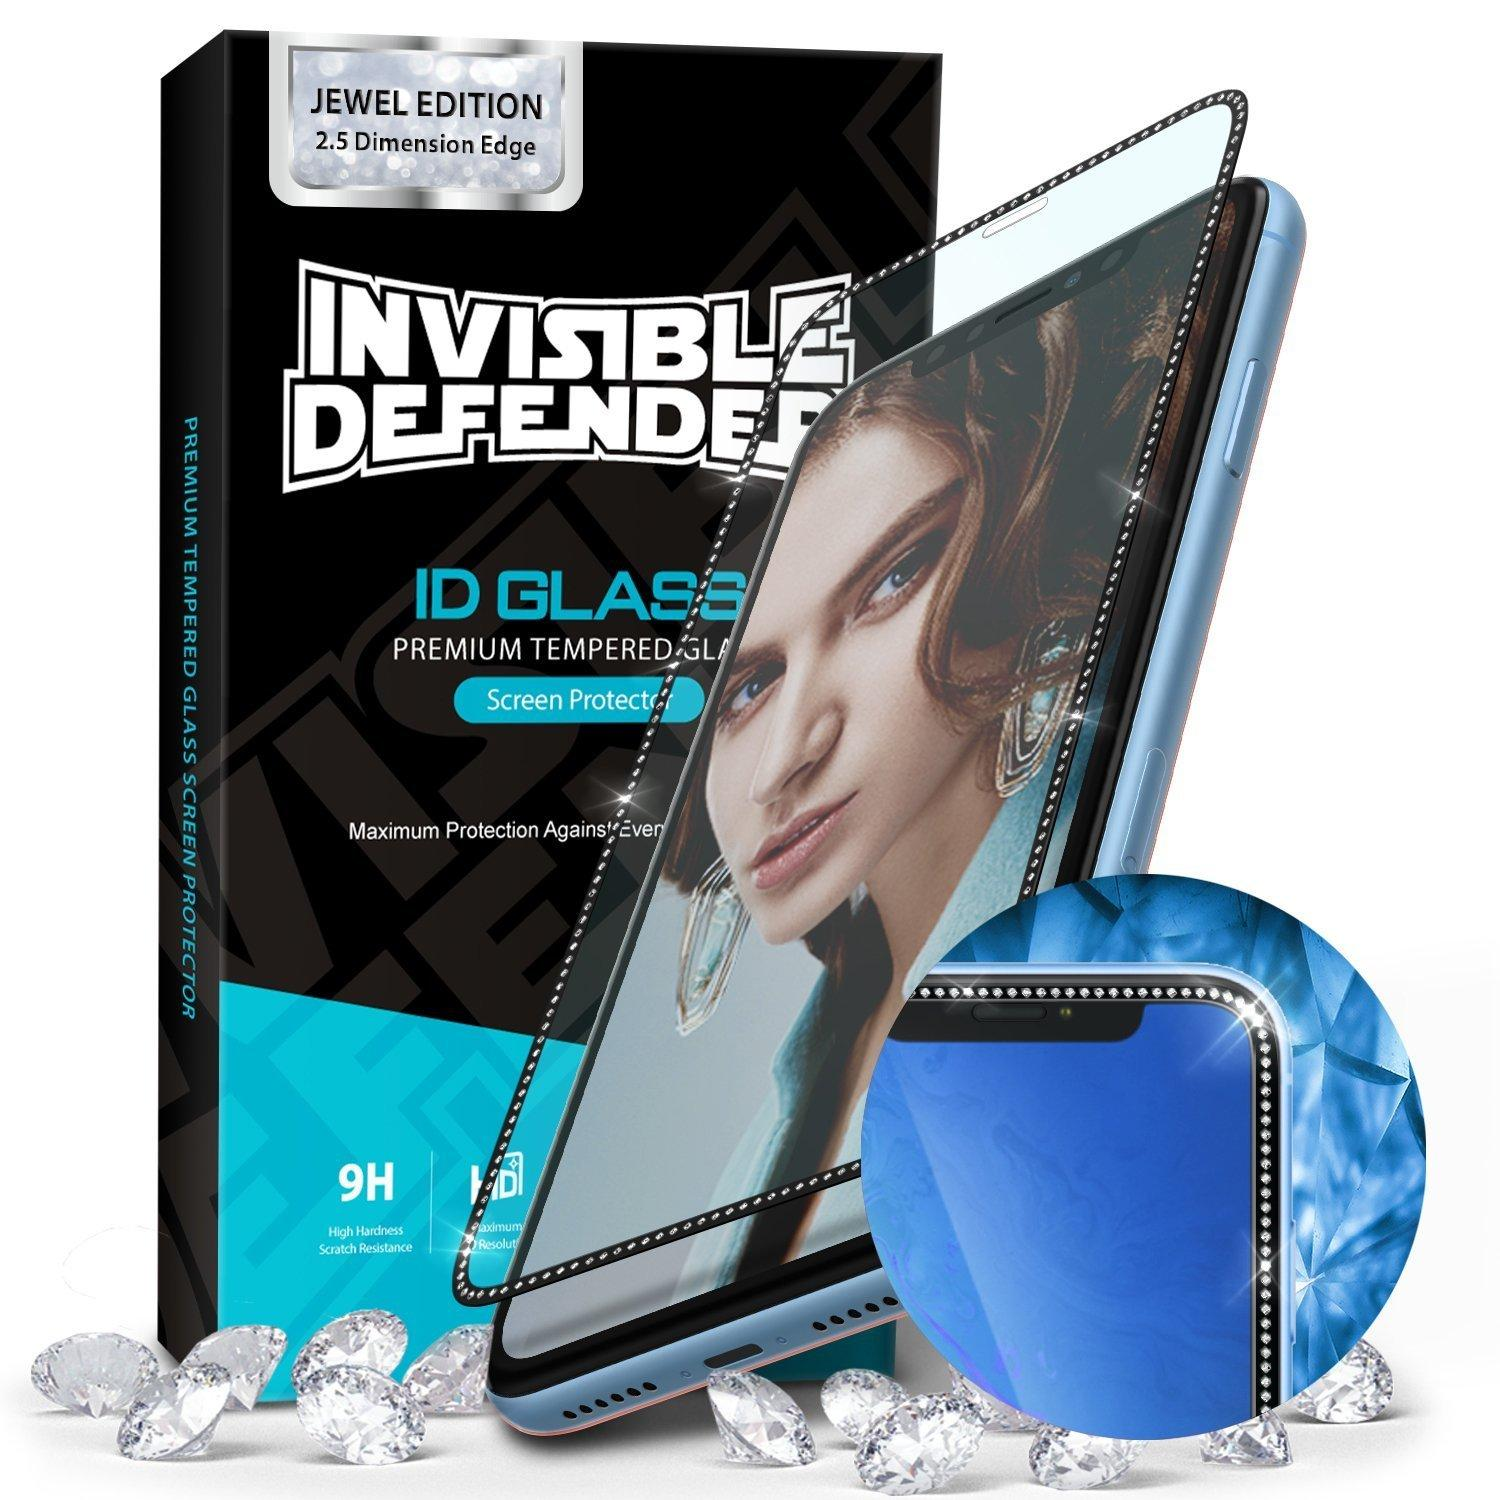 Invisible Defender Glass iPhone XR/11 Jewel Edition